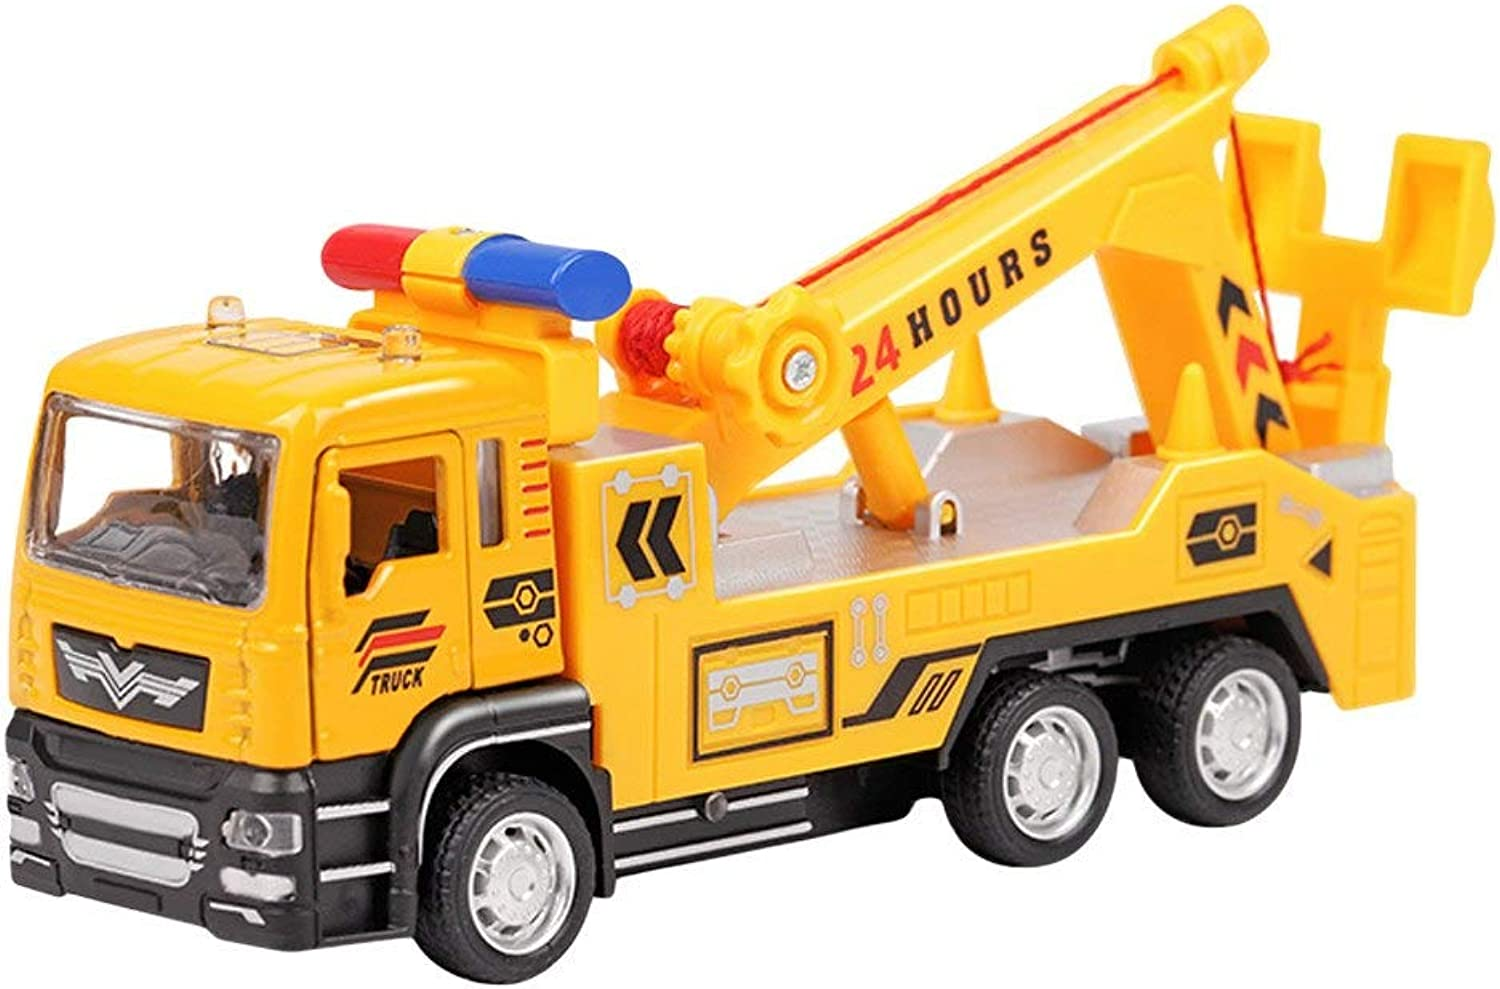 Generic 1 55 Pull Back Construction Vehicle Light & Music Alloy Models Toy Car Kids Vehicle Plastic Gift Toy 6 Years Vehicle Education C